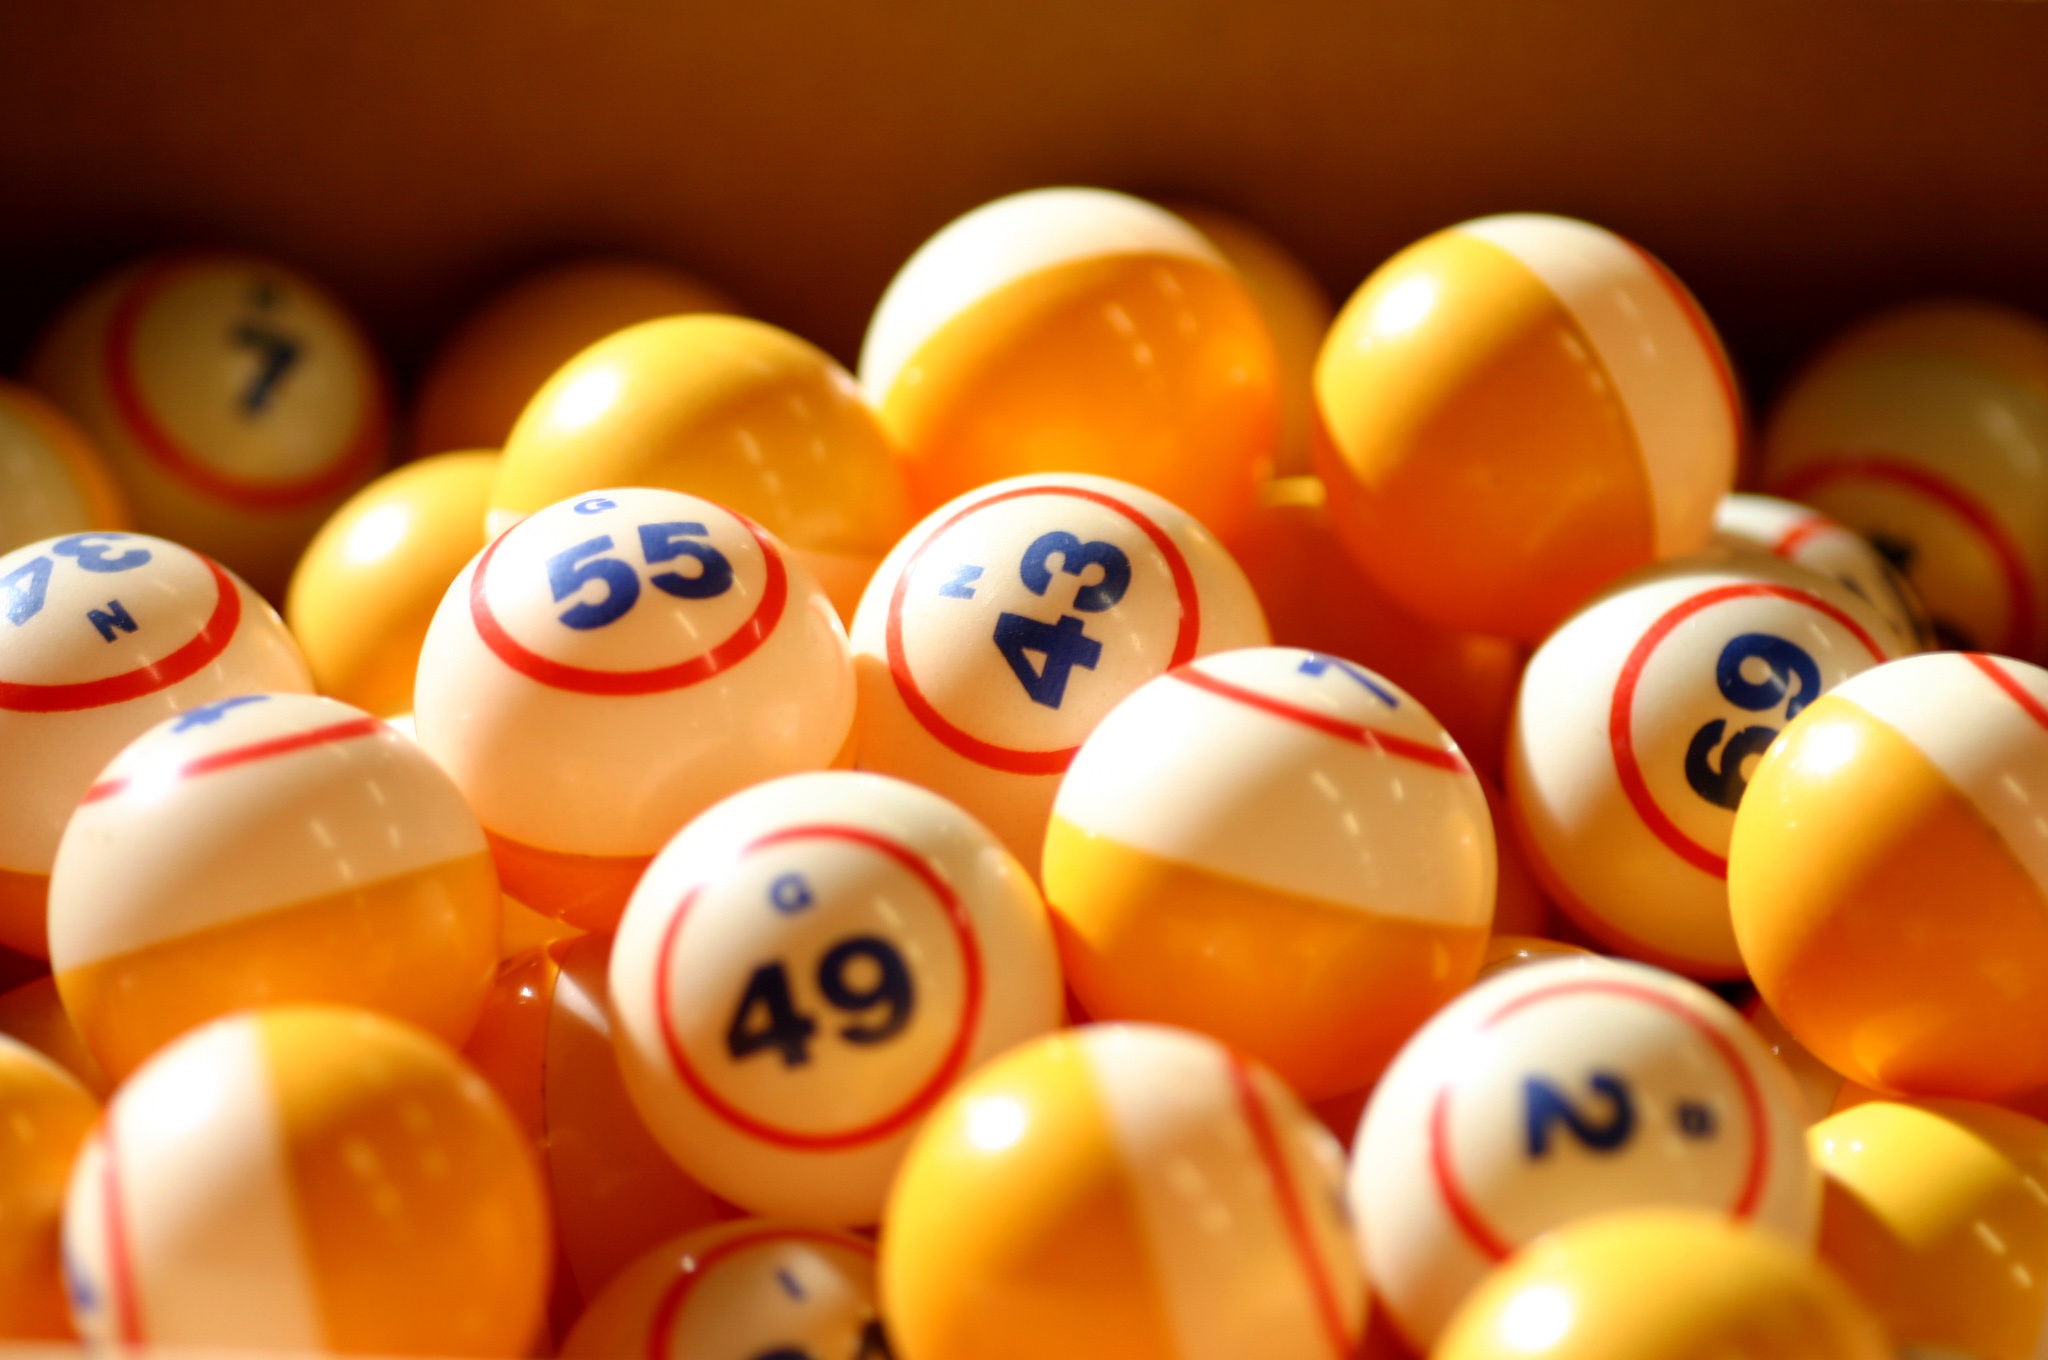 lottery business plan in india